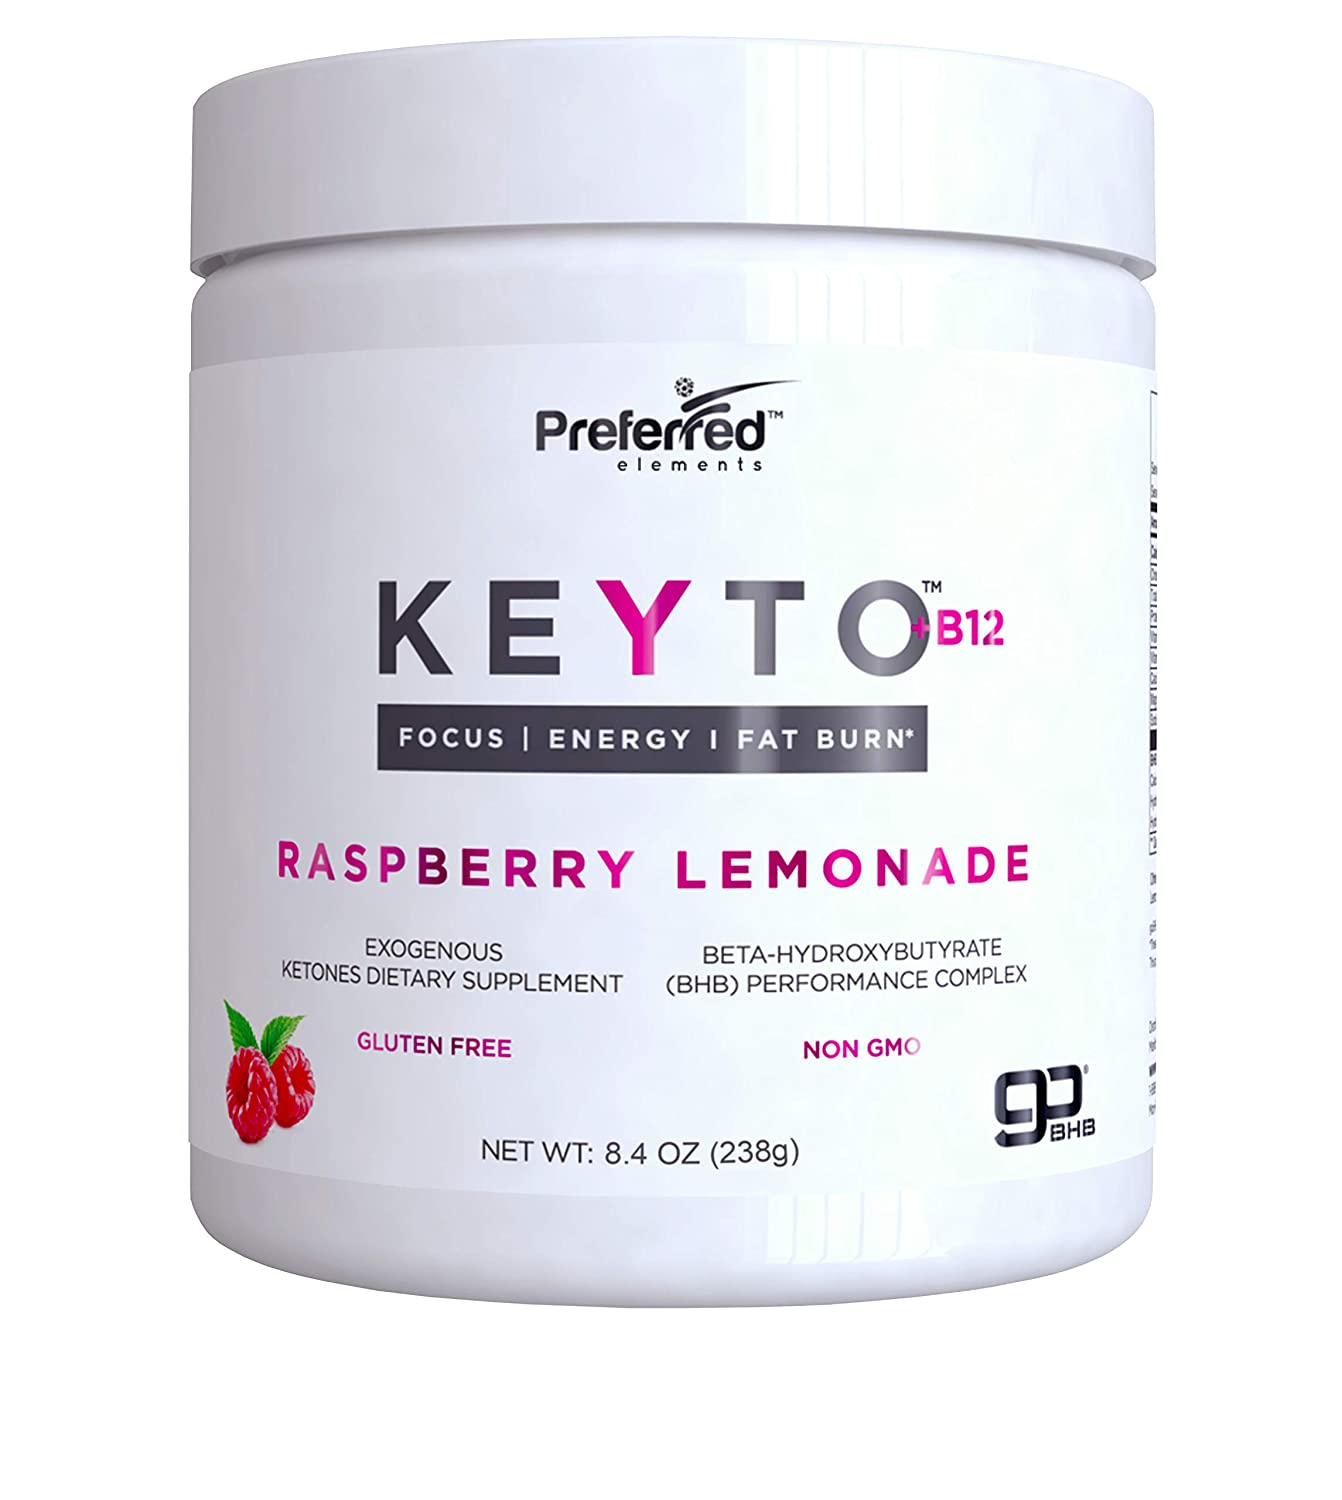 Keto BHB Salts Exogenous Ketones – Beta-Hydroxybutyrate Supplement Powder Vitamin B12 for Mental Clarity, Energy and Fat Burn – Raspberry Lemonade KEYTO by Preferred Elements